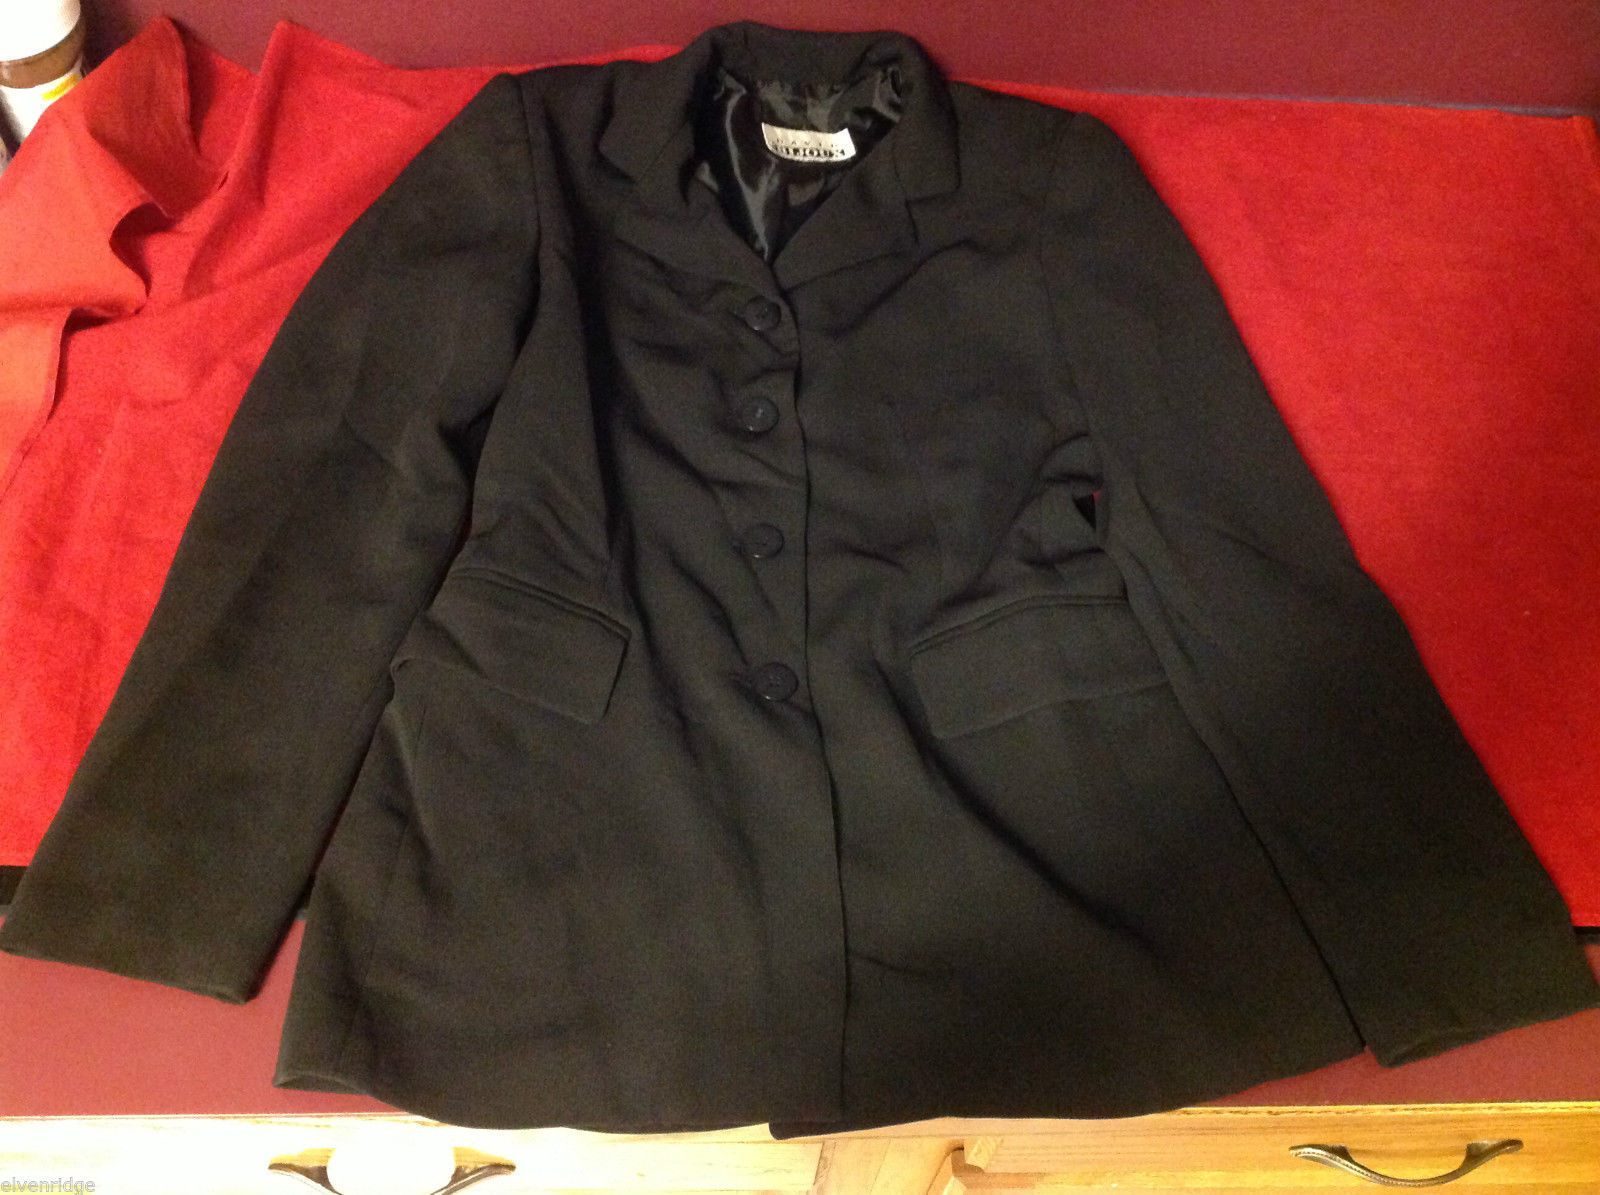 david bijon young woman girl  black blazer sport jacket size 4